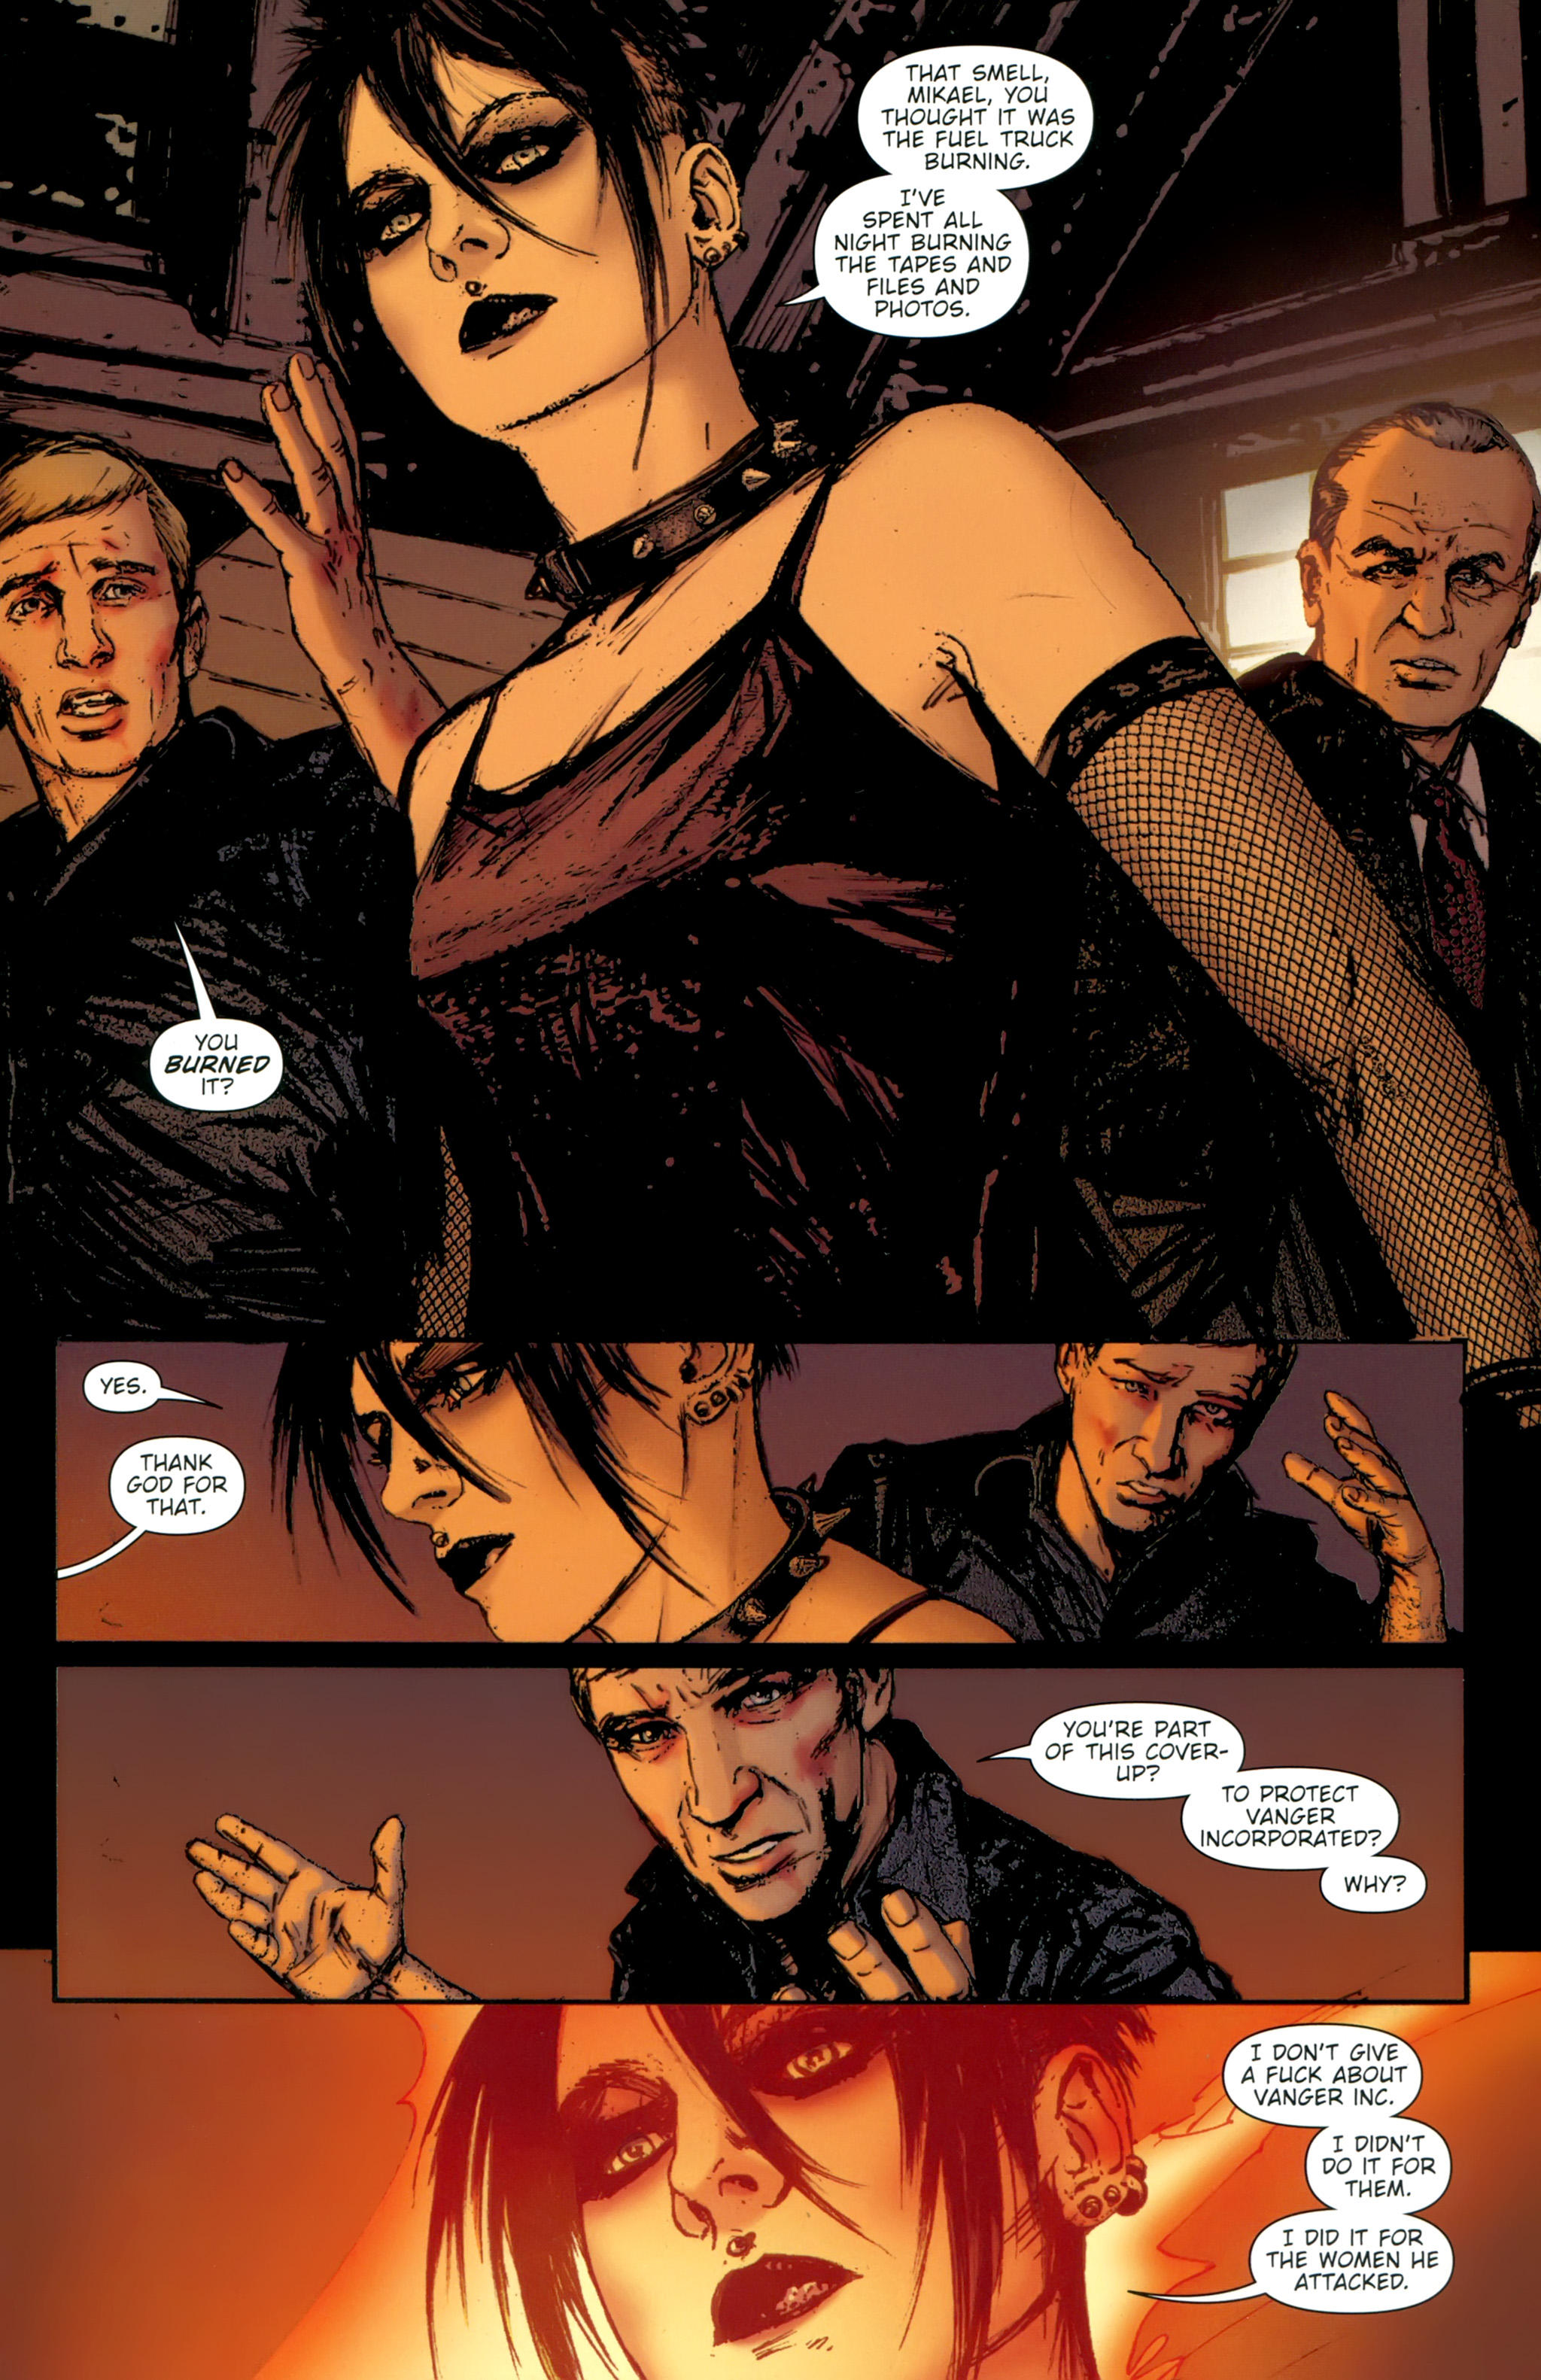 Read online The Girl With the Dragon Tattoo comic -  Issue # TPB 2 - 115